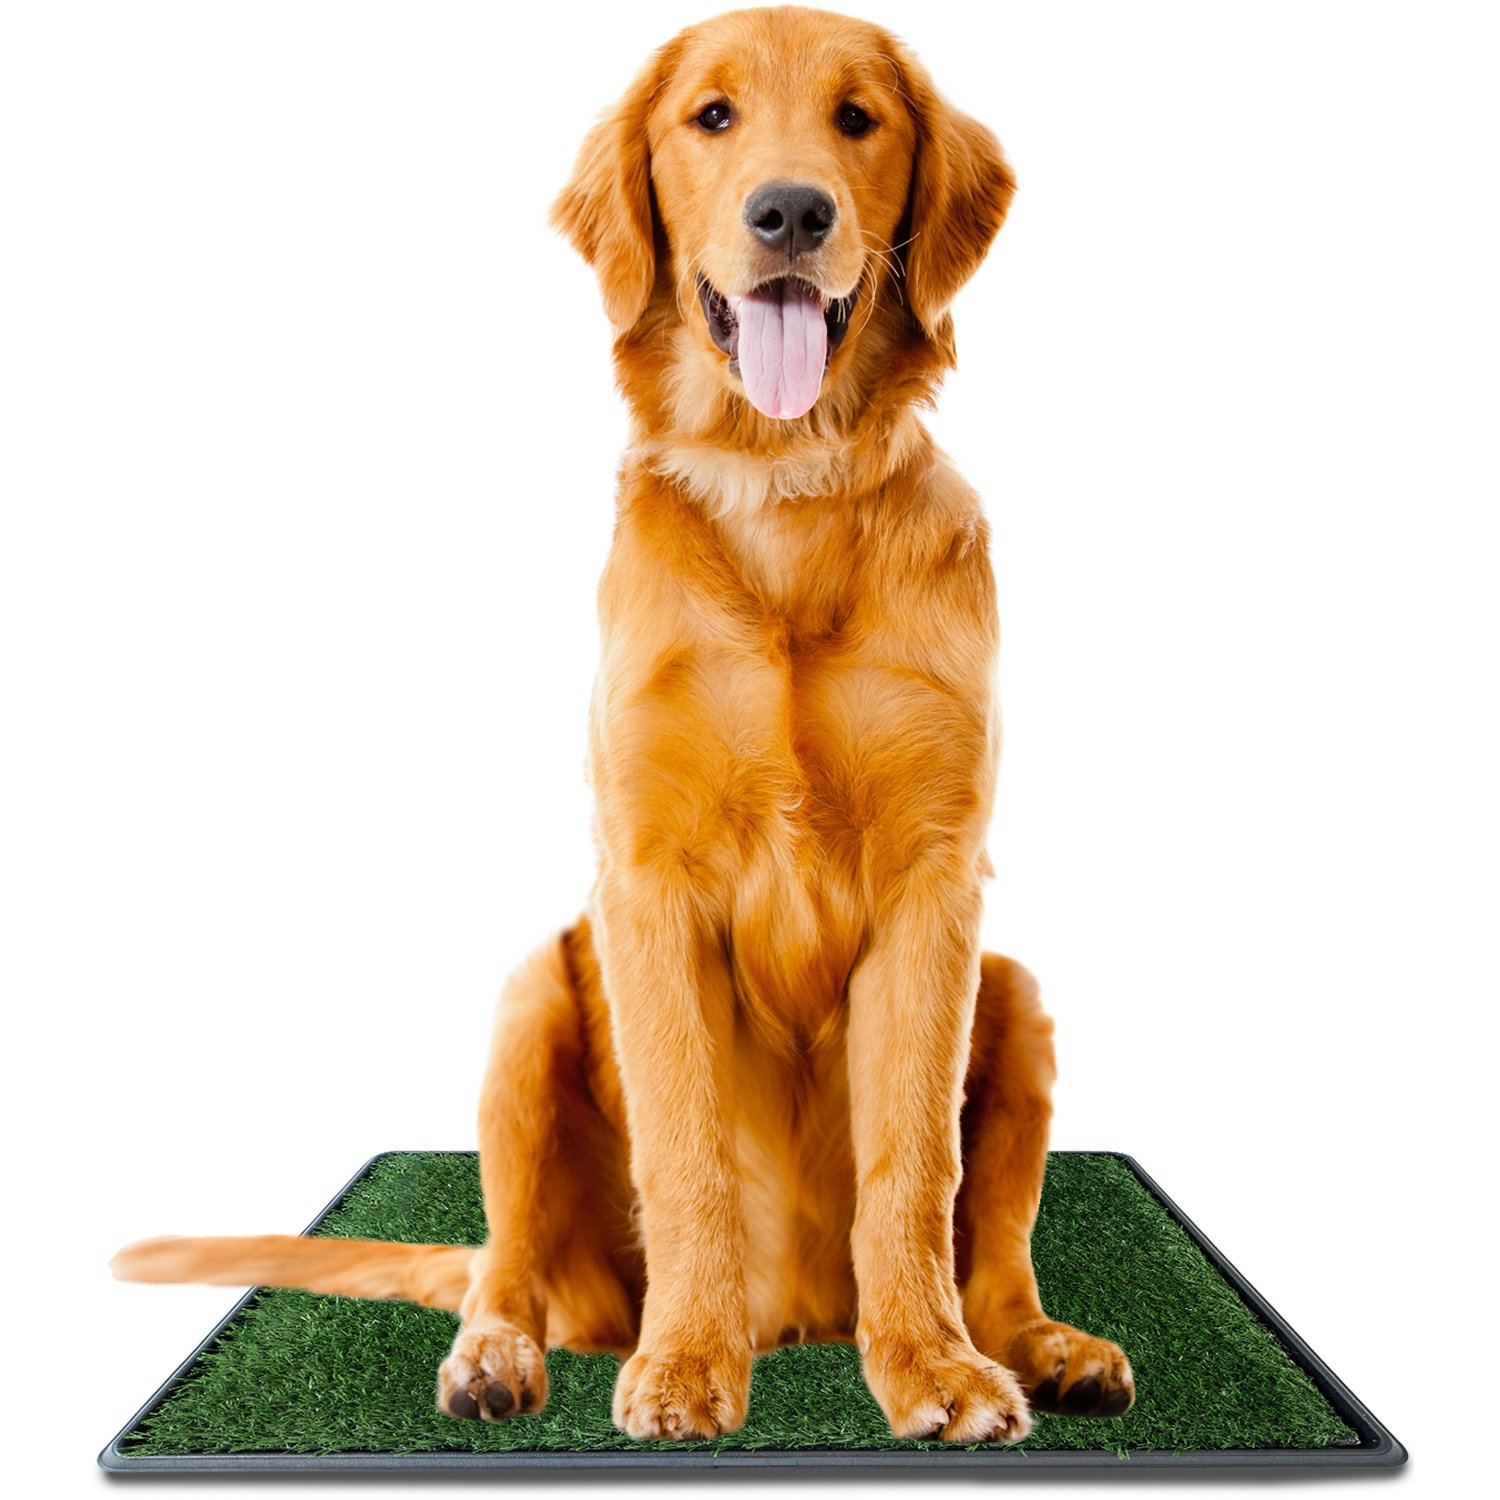 Ideas In Life Dog Potty Grass Pee Pad – Artificial Pet Grass Patch for Dogs to Pee On Great for Puppy Potty Training as an Indoor/Outdoor Litter Box Large 30'' x 20'' + e-Book for Potty Training